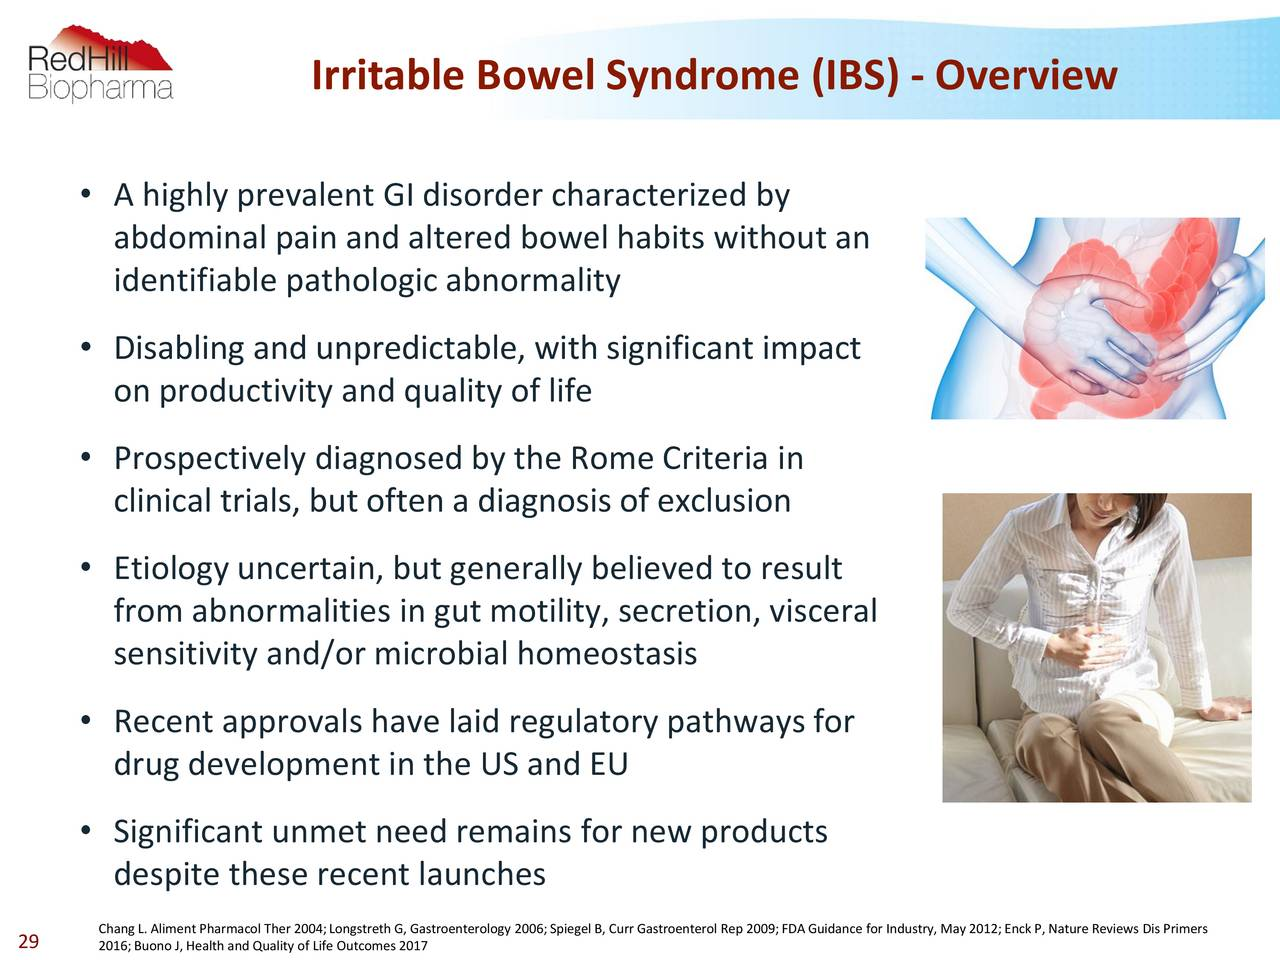 an overview of the irritable bowel syndrome in medical research Overview of ibs irritable bowel syndrome (ibs) is an intestinal disorder that causes crampy pain, gassiness, bloating and changes in bowel habits because an organic cause has not been found, ibs often has been thought to be caused by emotional conflict or stress while stress may worsen ibs symptoms, research suggests that other.